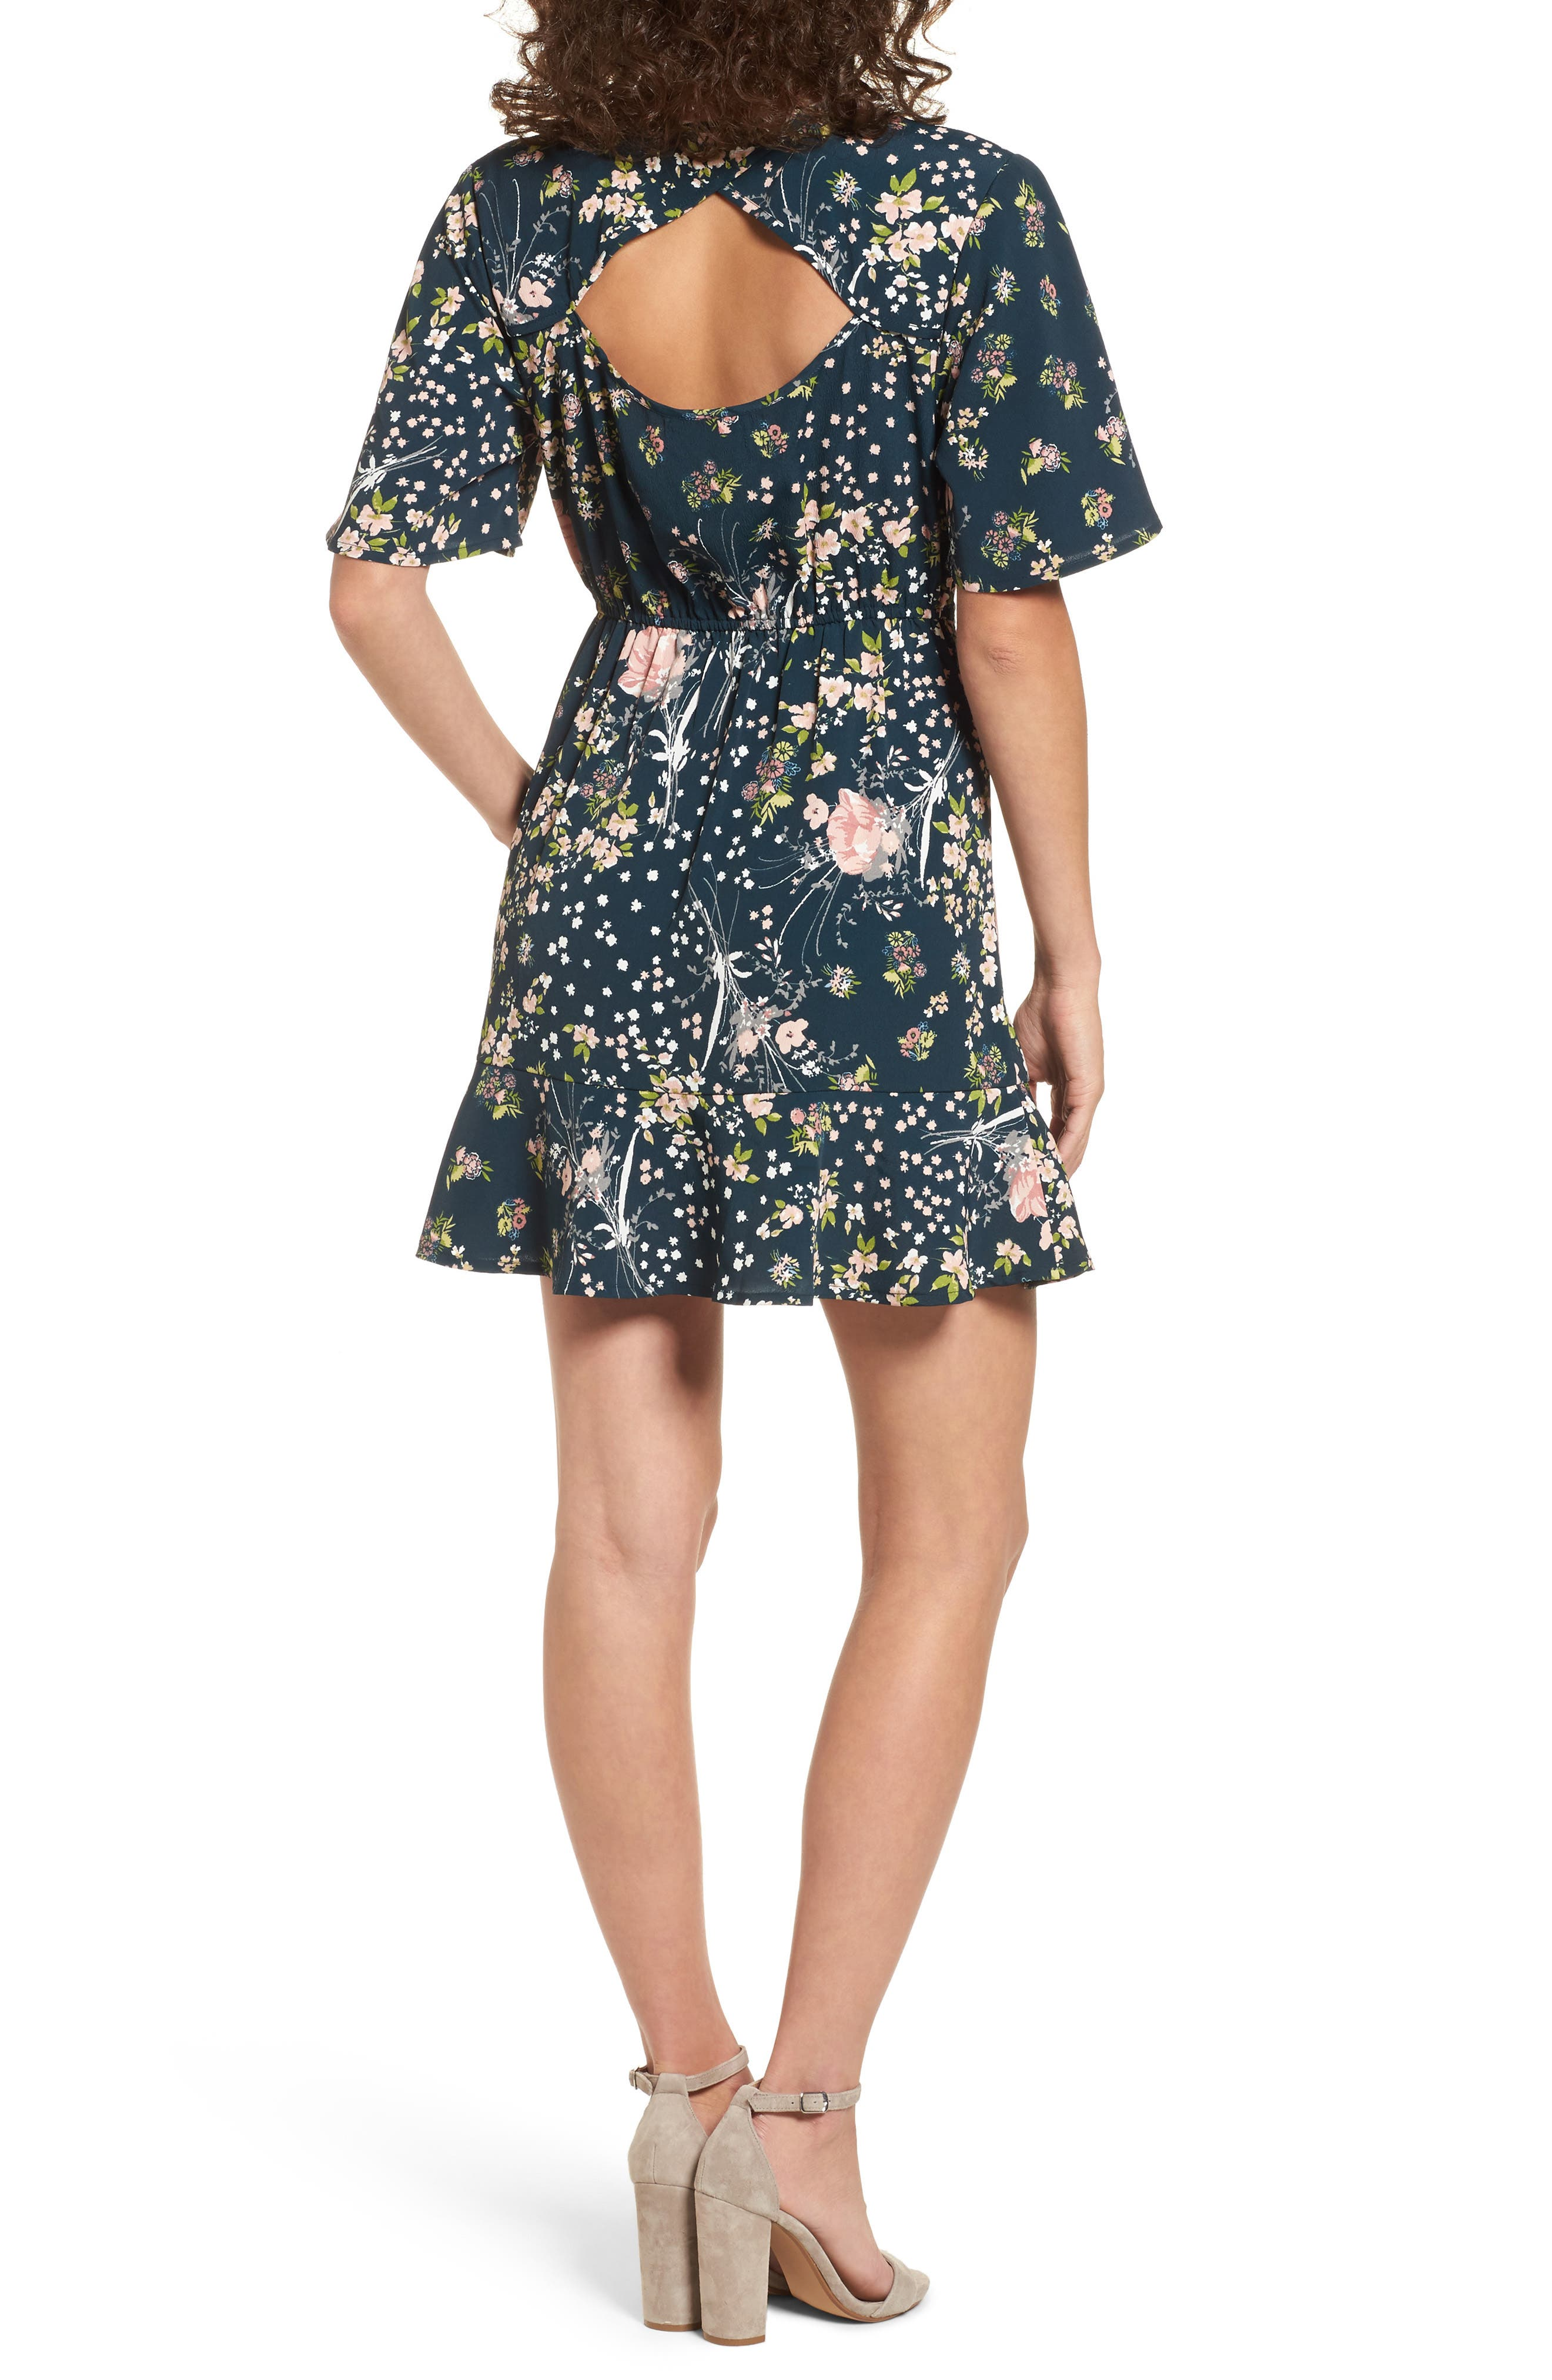 Moody Floral Dress,                             Alternate thumbnail 2, color,                             440